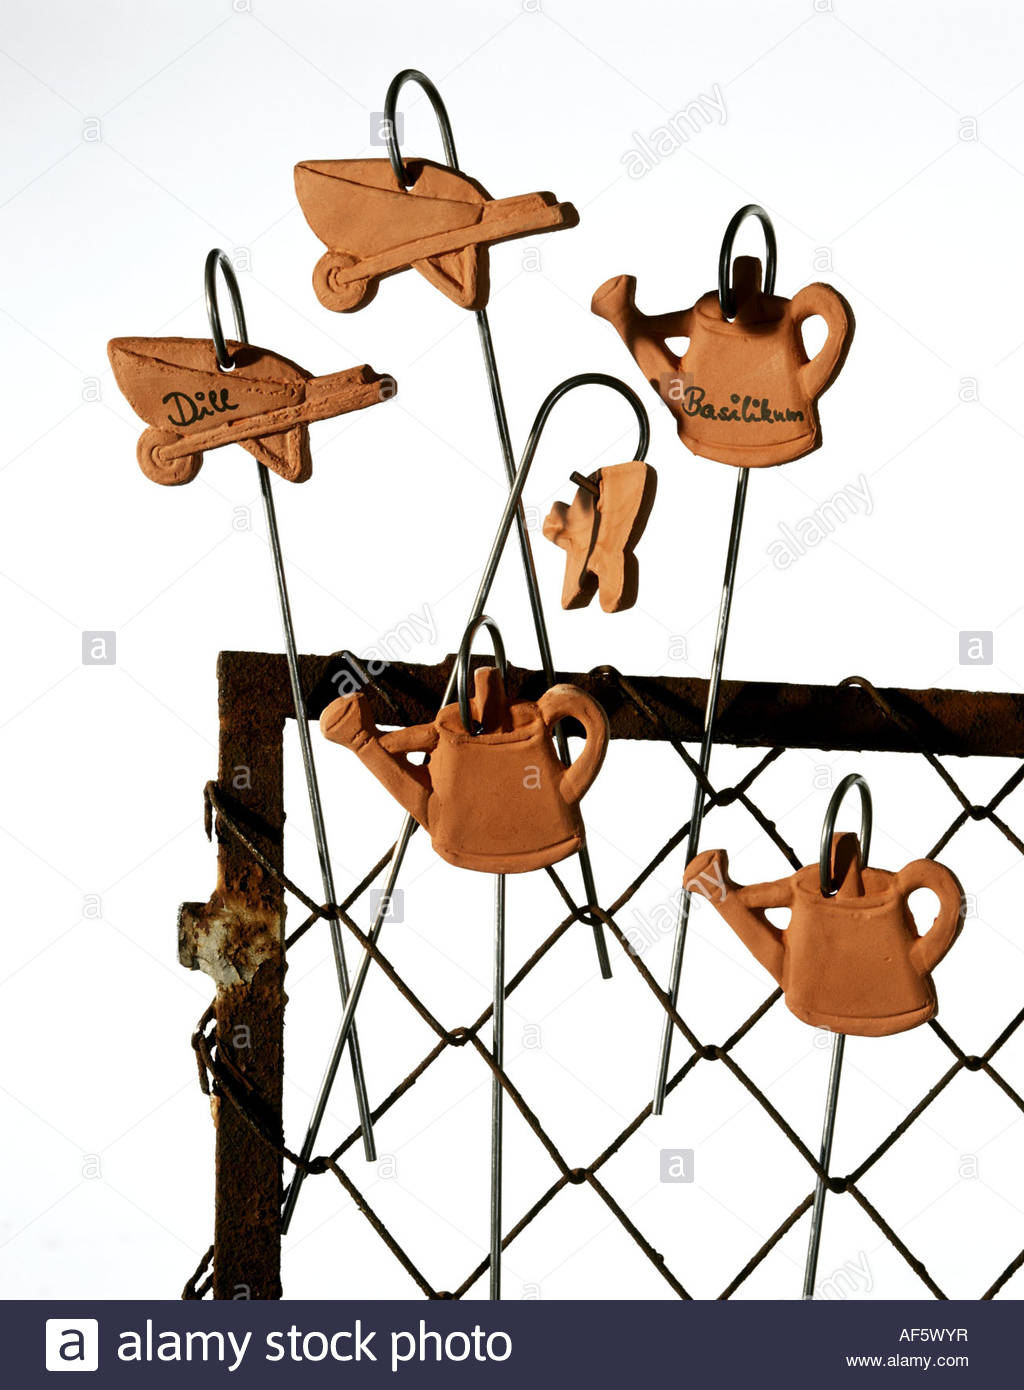 Small Terracotta Garden Tools As Name Labels For Plants